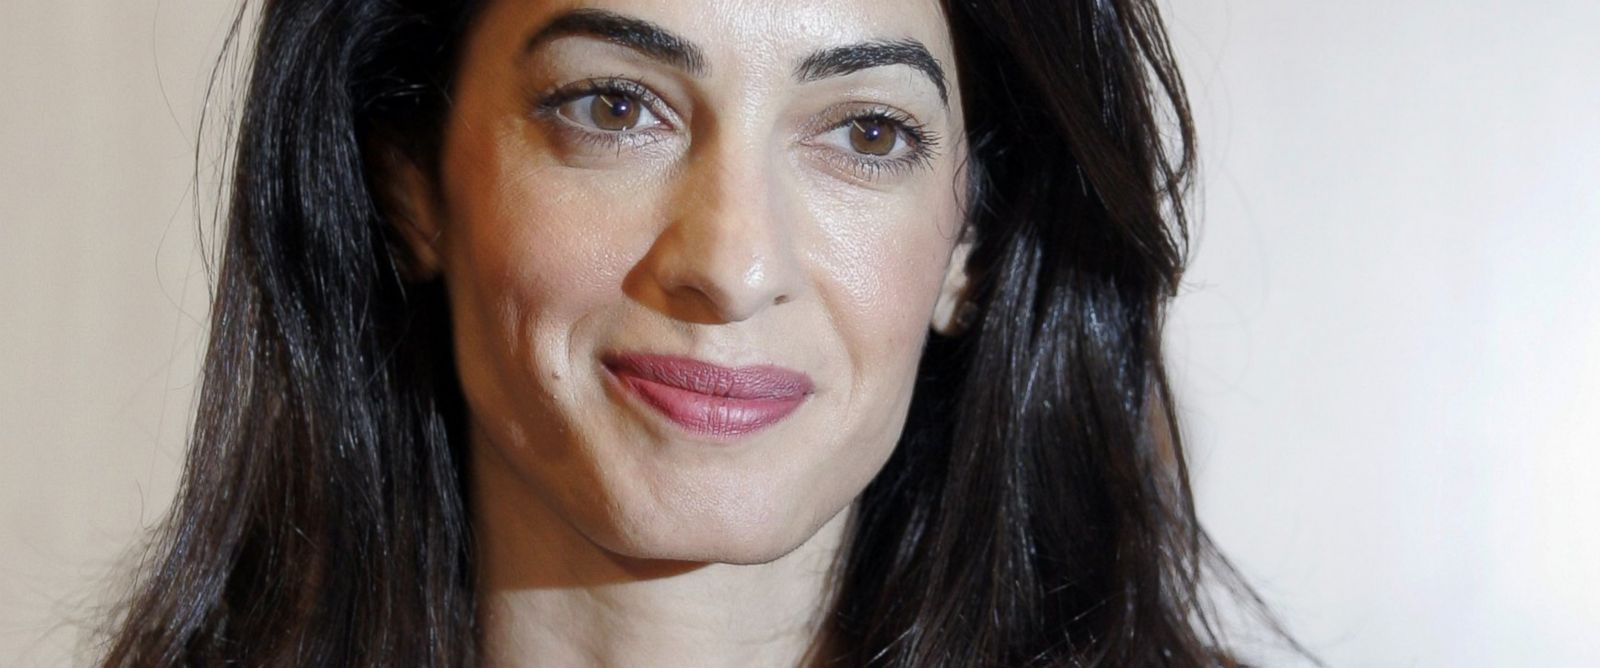 amal alamuddin capelliamal alamuddin 2017, amal alamuddin clooney, amal alamuddin george clooney, amal alamuddin vk, amal alamuddin wiki, amal alamuddin speech, amal alamuddin young, amal alamuddin photo, amal alamuddin style blog, amal alamuddin twins, amal alamuddin bags, amal alamuddin youtube, amal alamuddin oxford, amal alamuddin twitter, amal alamuddin interview, amal alamuddin shoes, amal alamuddin old photos, amal alamuddin barrister doughty street, amal alamuddin julian assange, amal alamuddin capelli